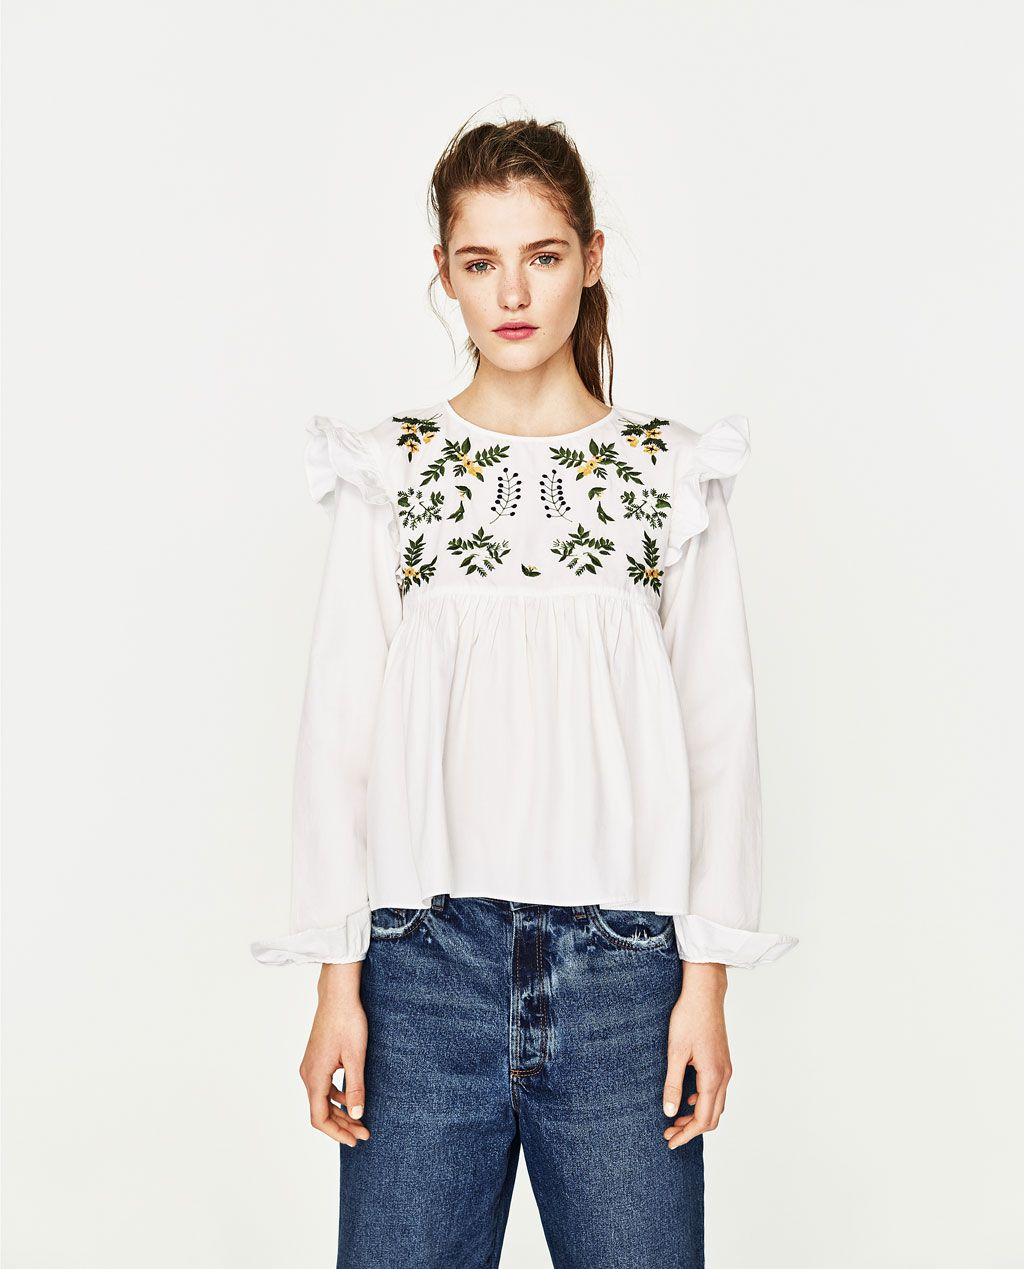 ZARA - WOMAN - SHIRT WITH EMBROIDERED FLOWER | Spring 2017 ...